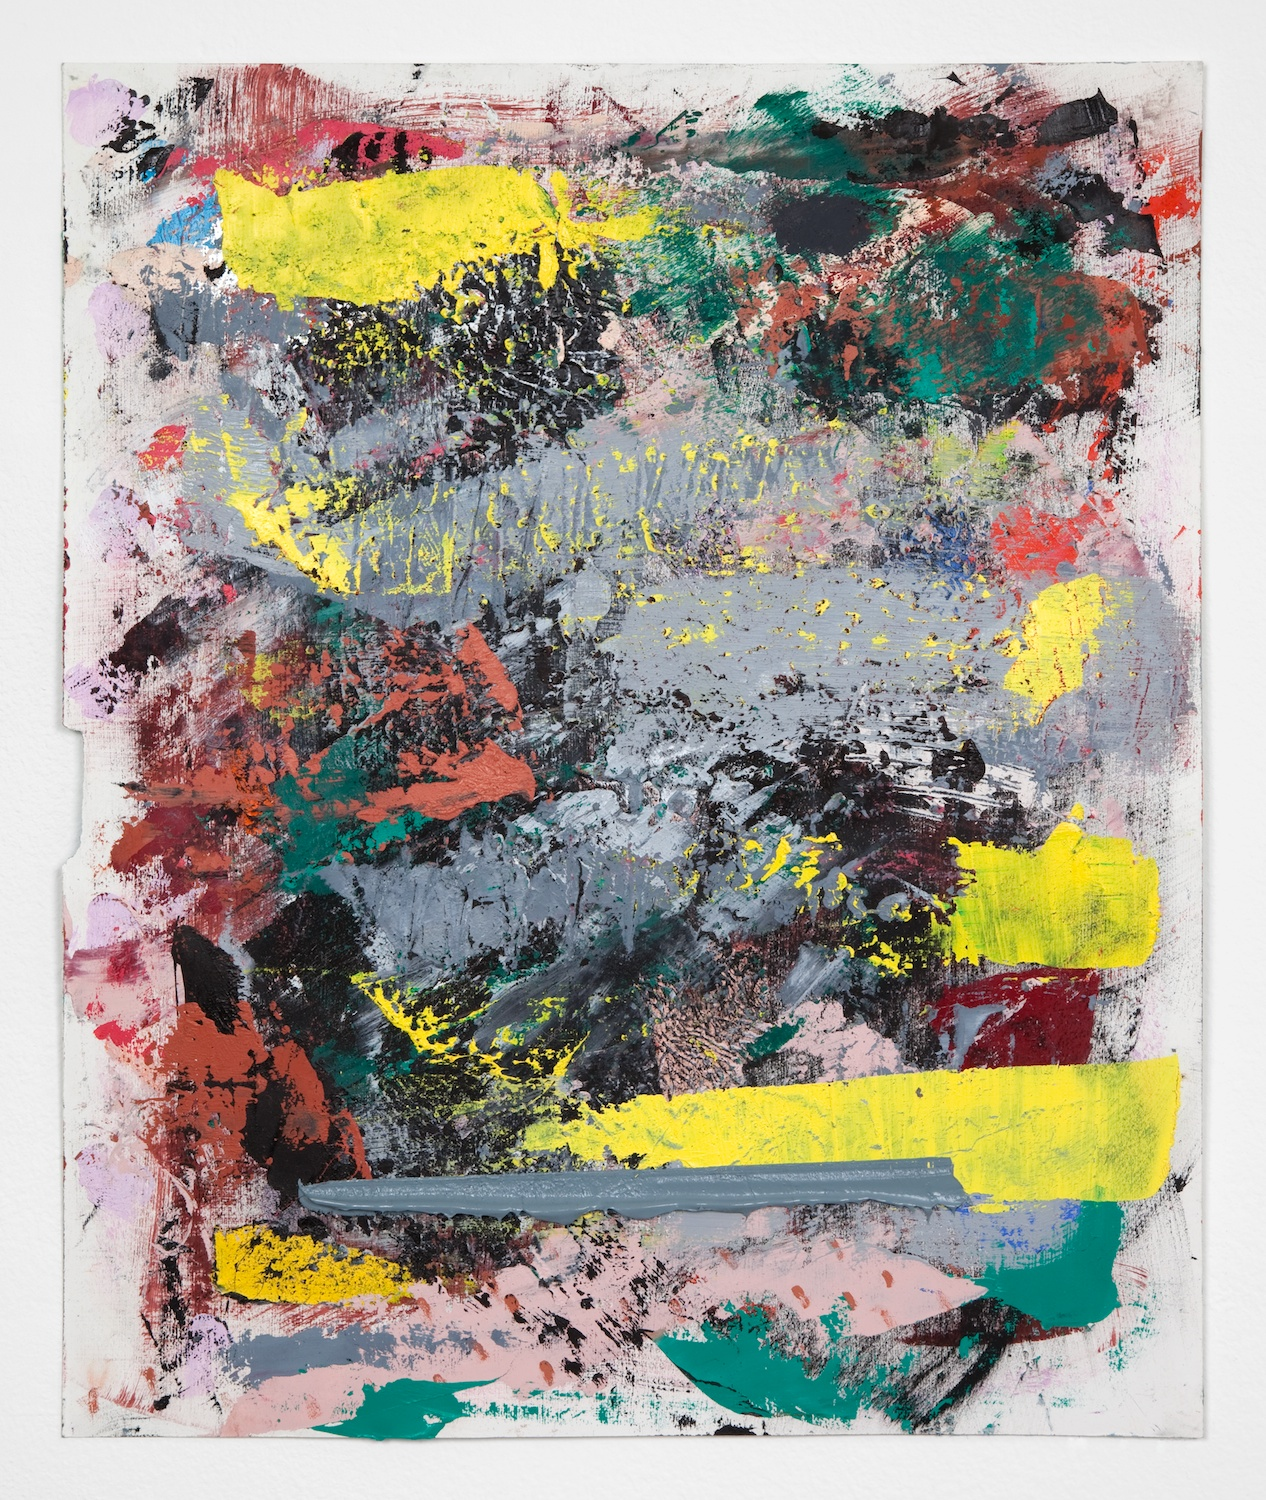 Alex Olson  Untitled  2012 Oil on gessoed paper 17h x 14w in AO084